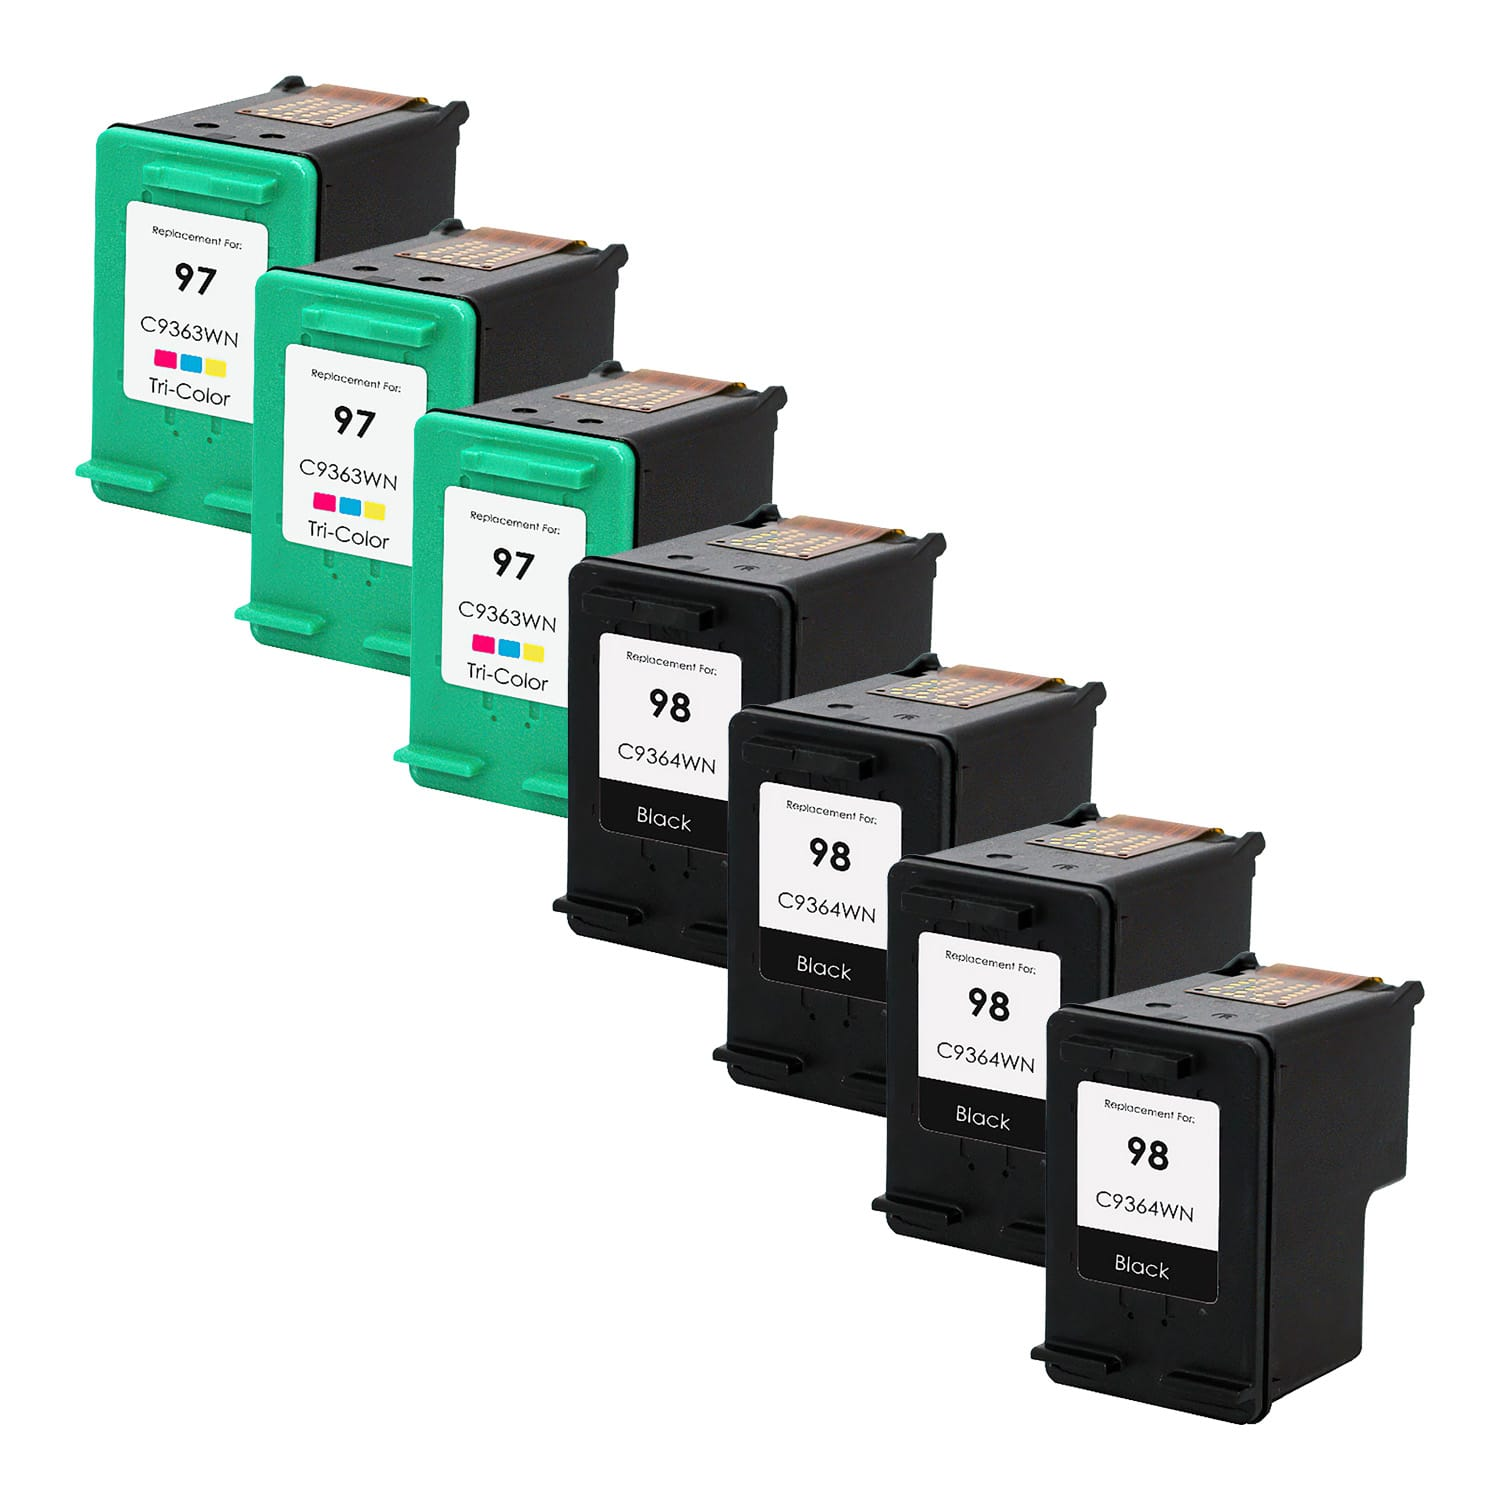 Remanufactured HP 97-98 Inkjet Pack - 7 Cartridges